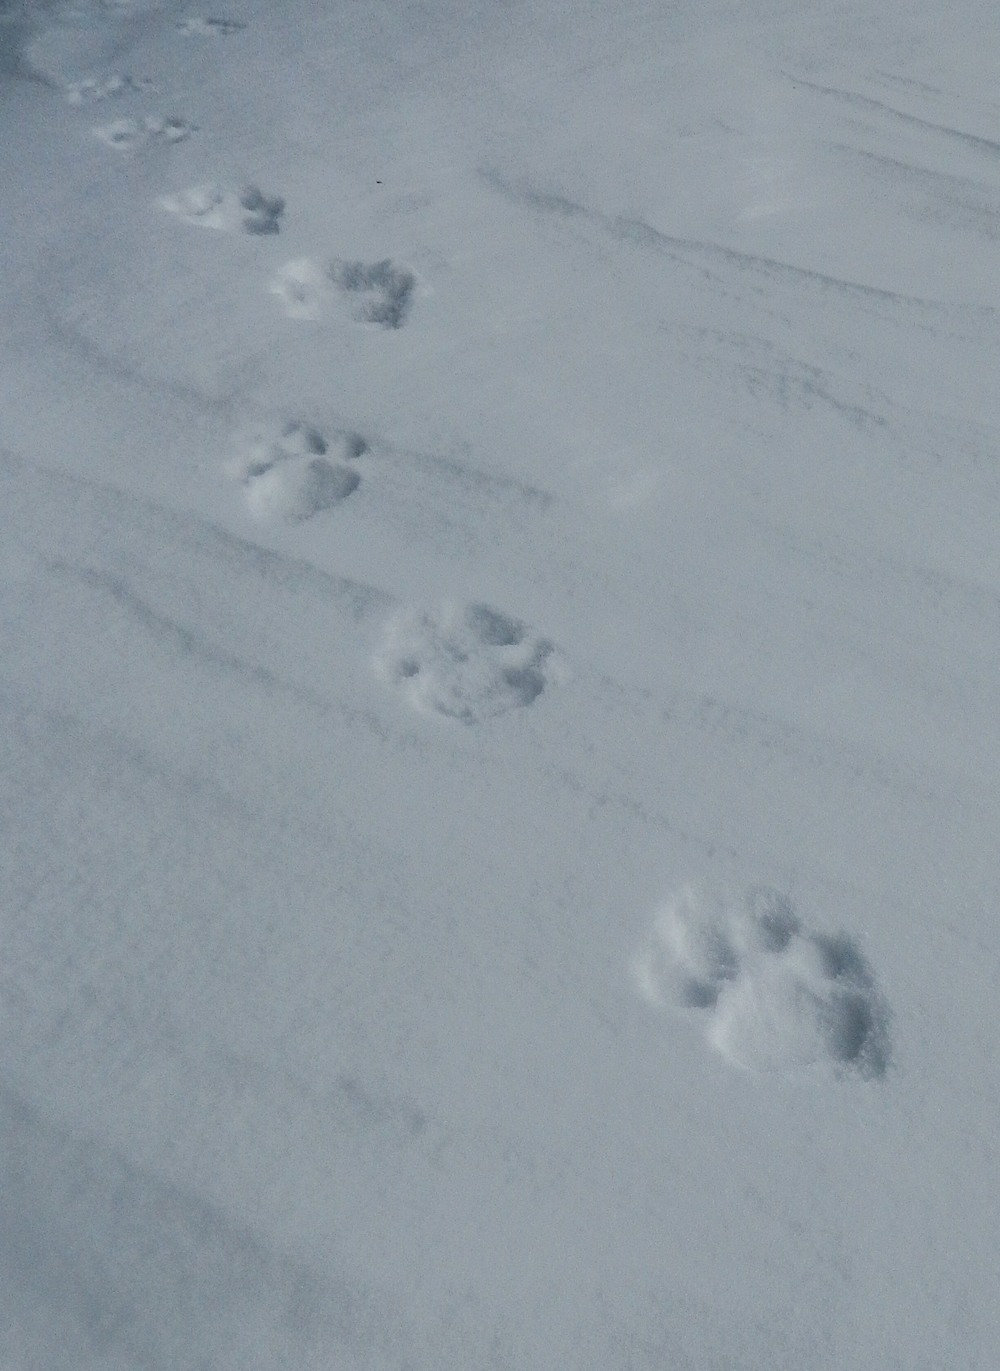 Snow Leopard tracks near high camp